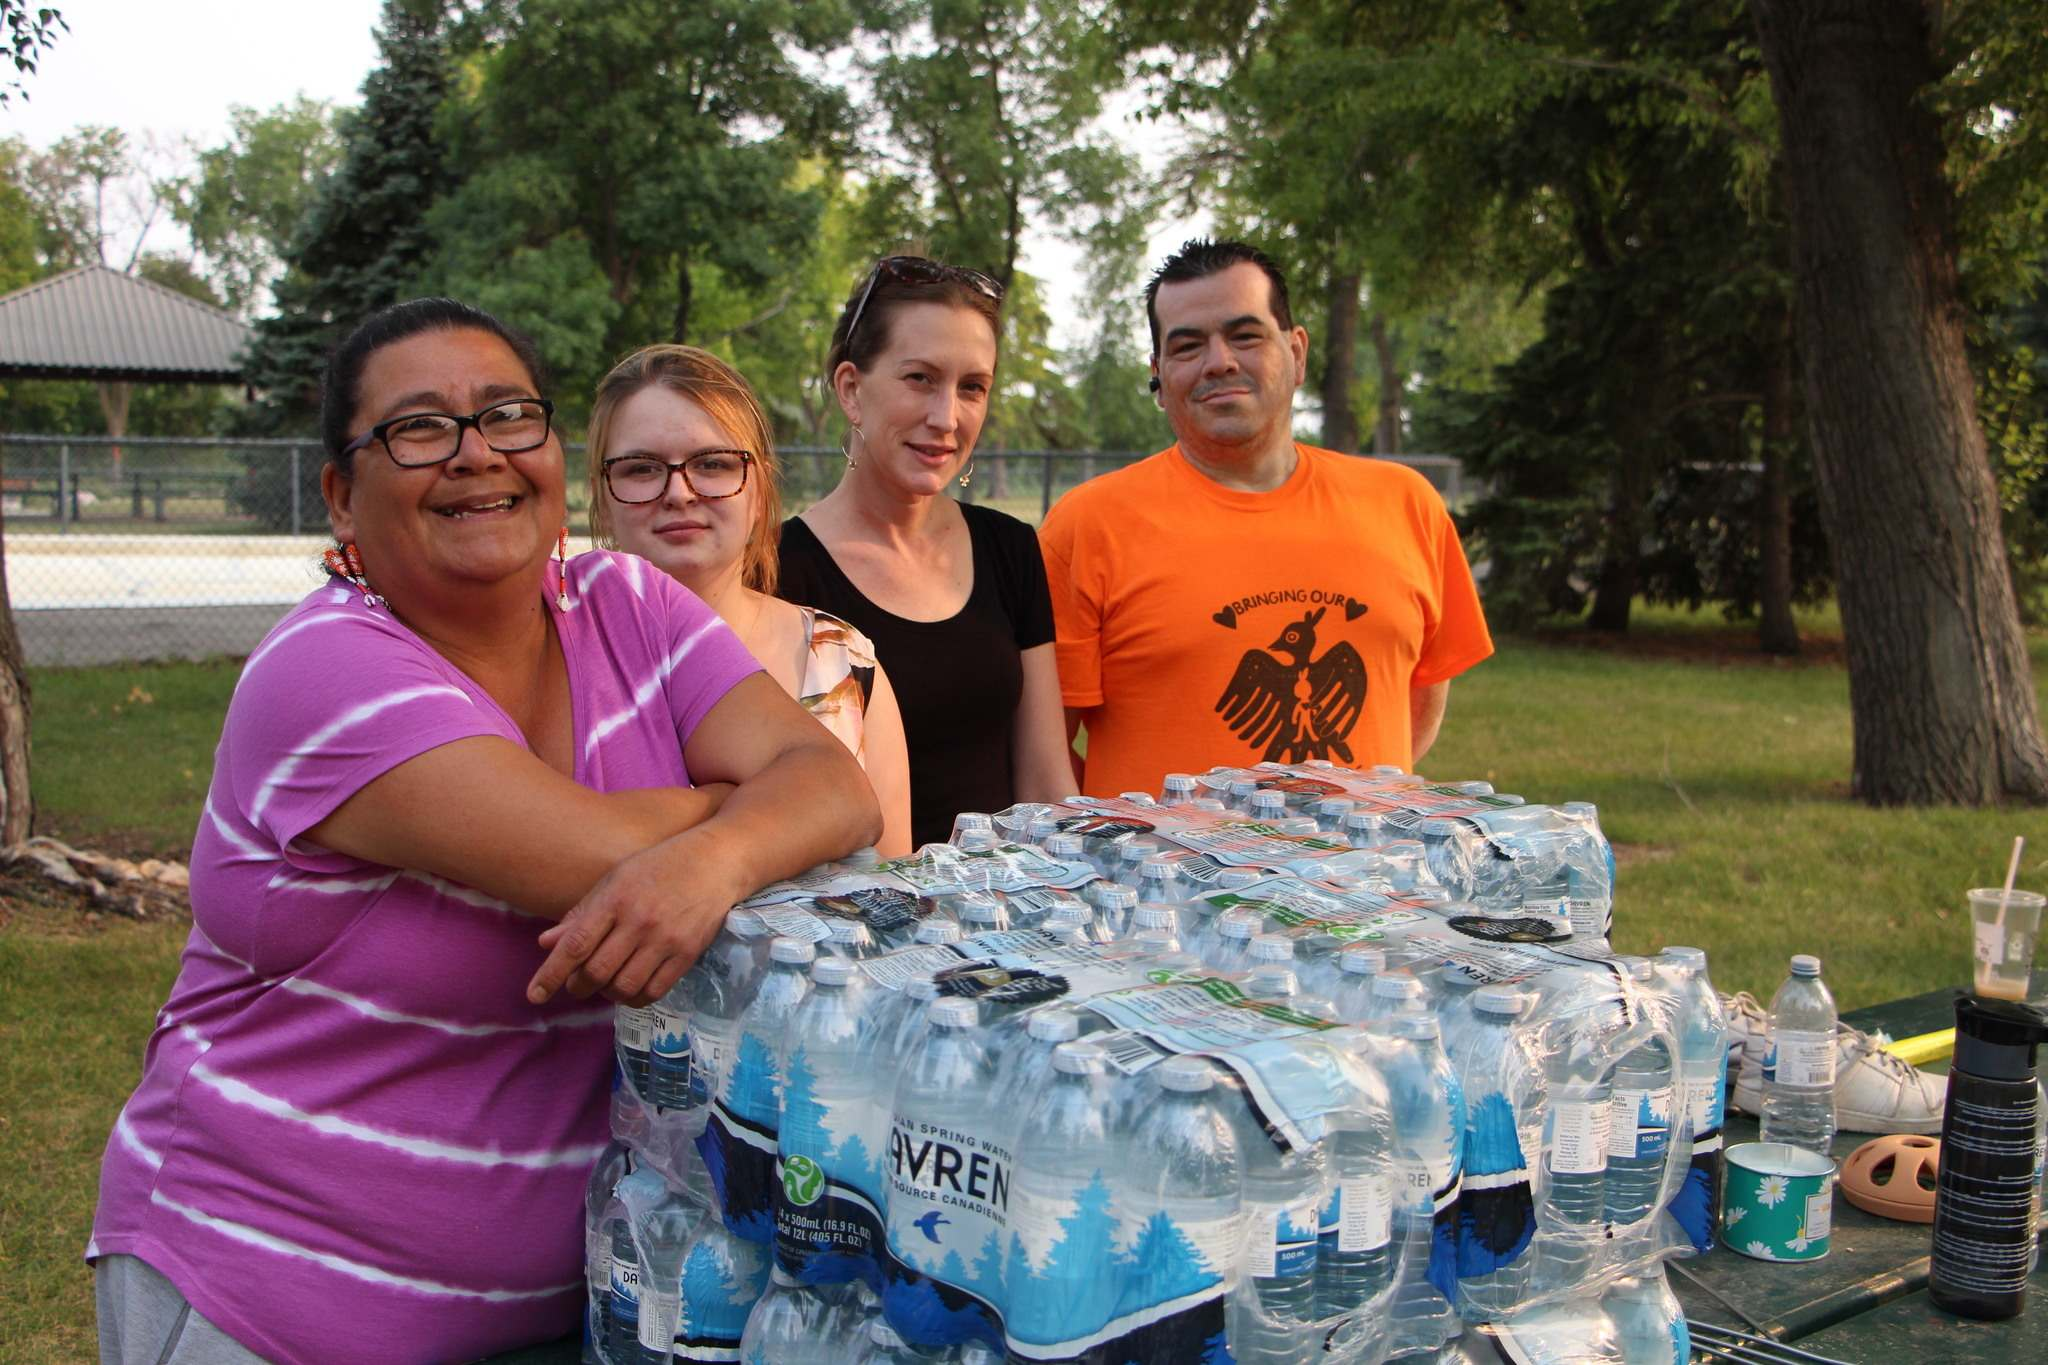 Mary Burton (left), executive director of Fearless R2W, Lalonnie Shimonko and Jessie Leigh, executive director of the North End Community Renewal Corporation, and John Morrissette ran an evening pop-up clinic in St. John's Park. (Mikaela MacKenzie / Winnipeg Free Press)